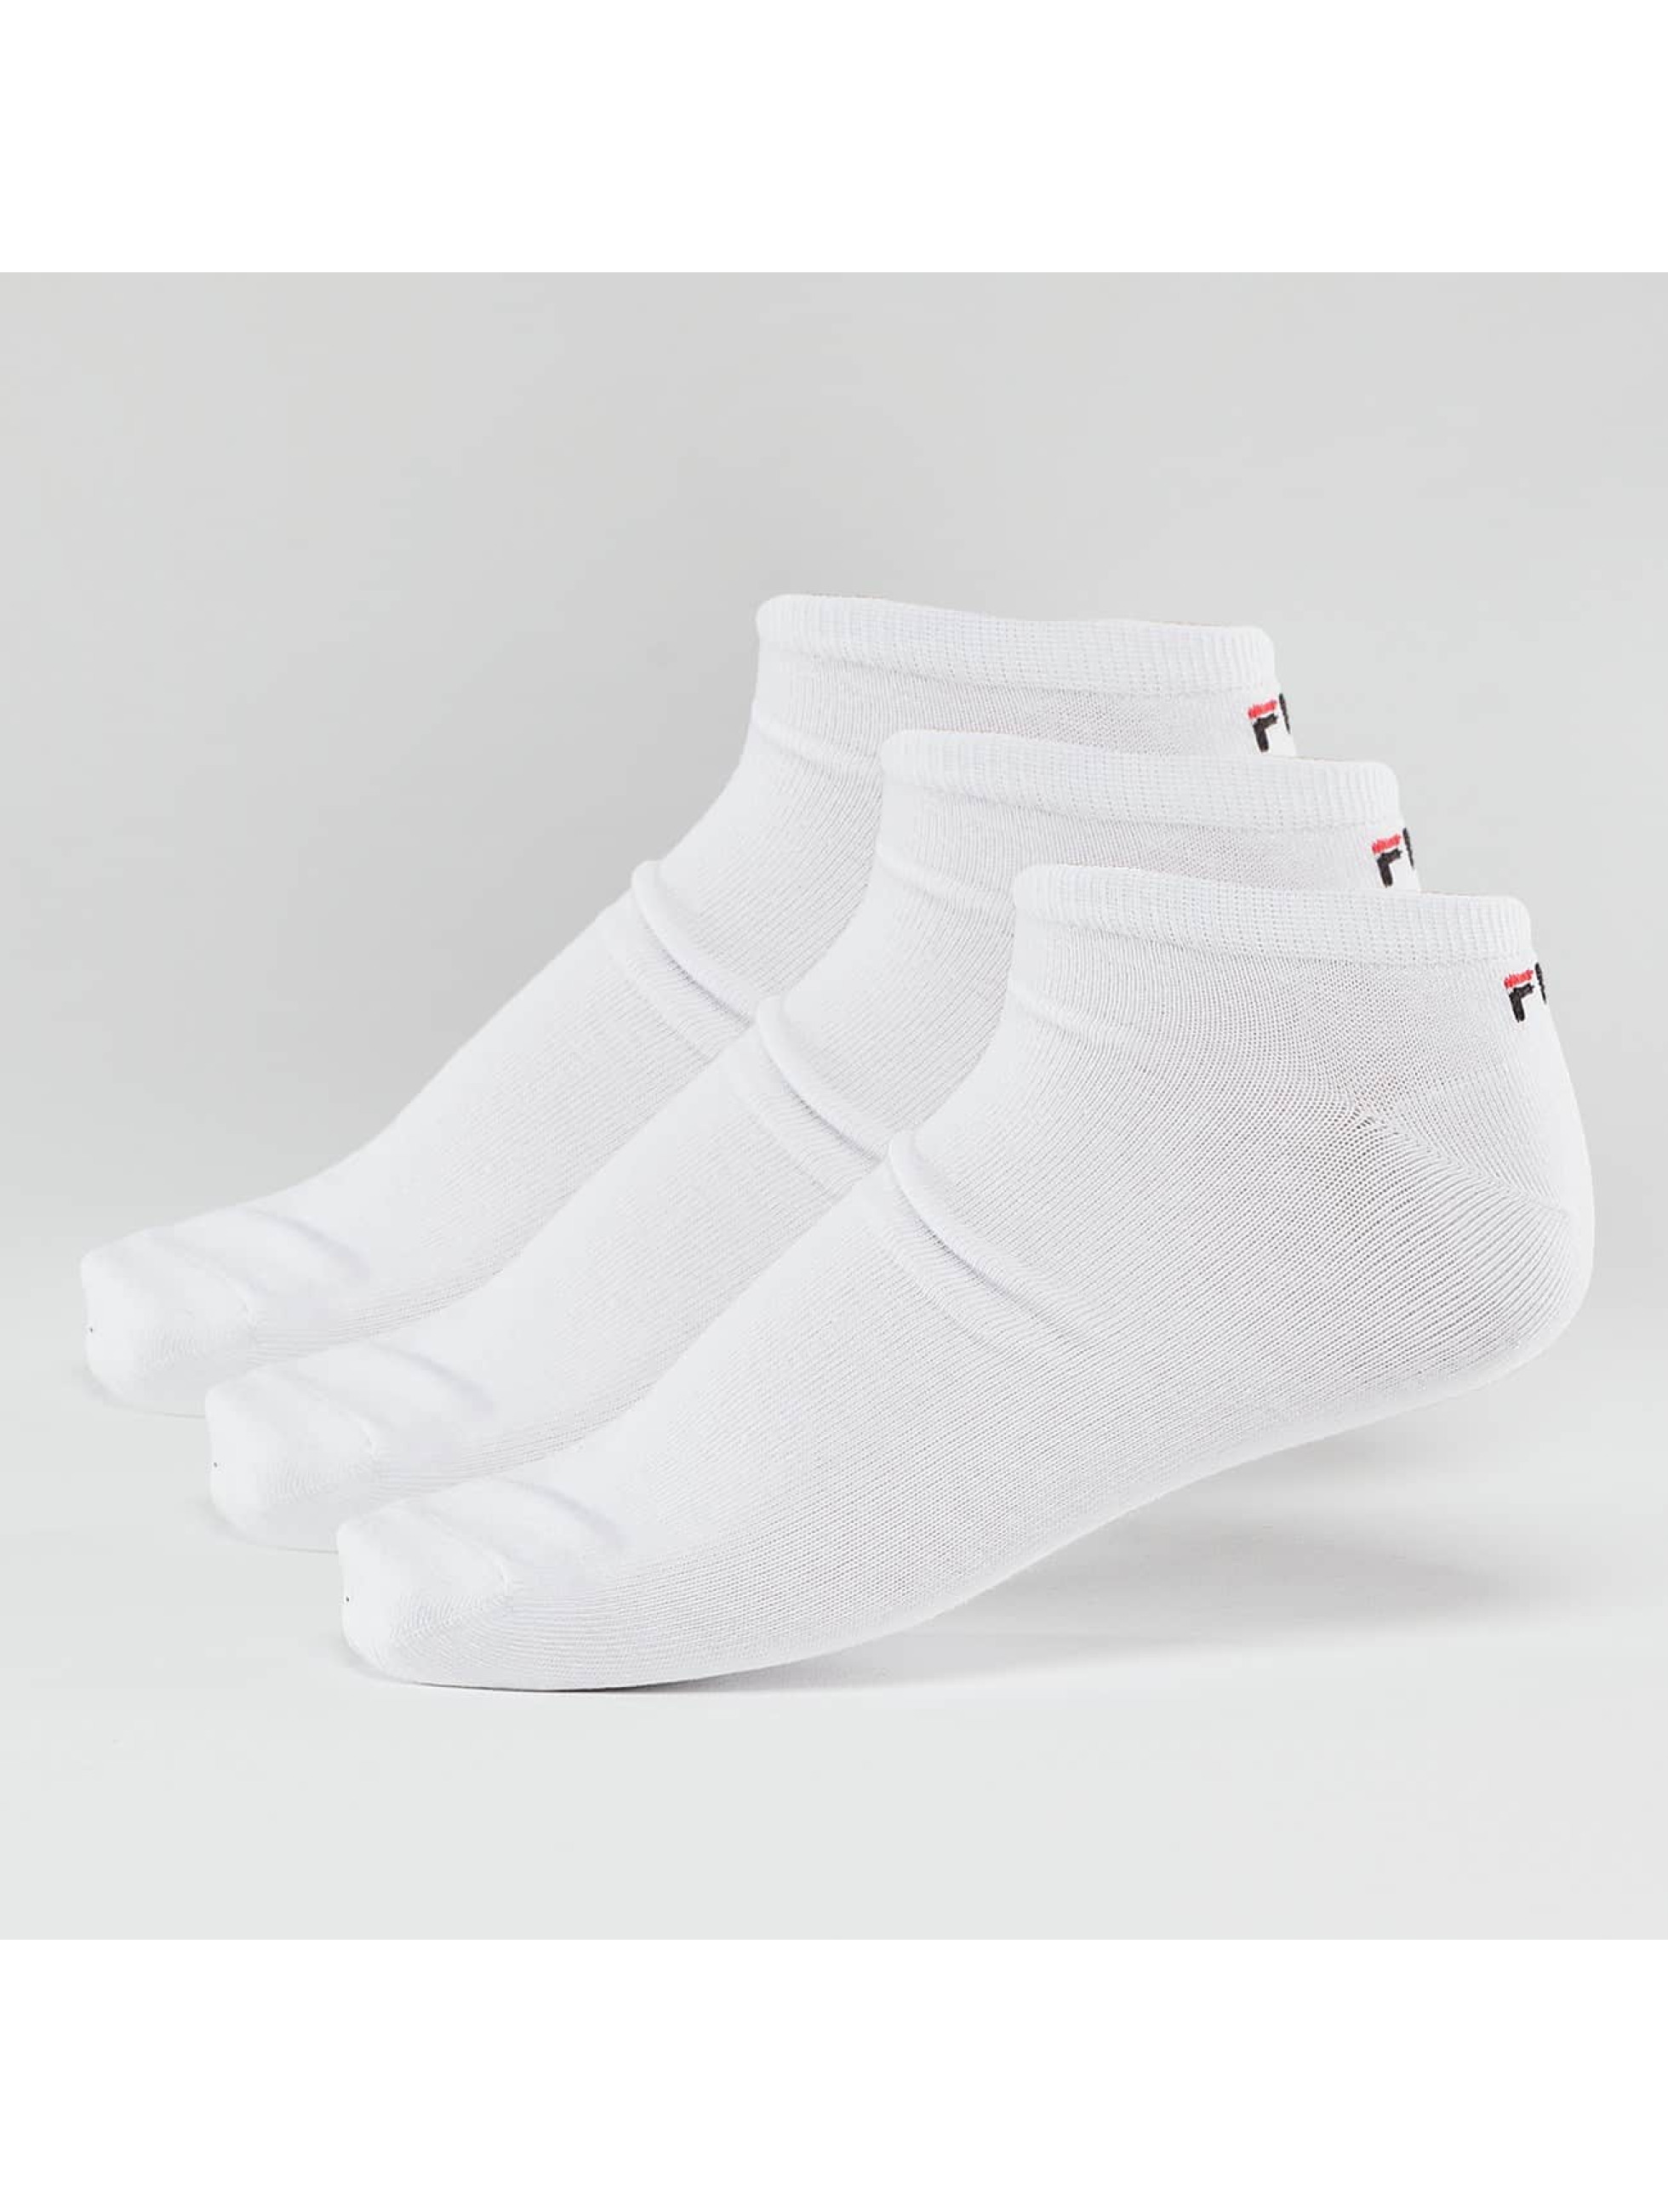 FILA Calcetines 3-Pack Invisible blanco